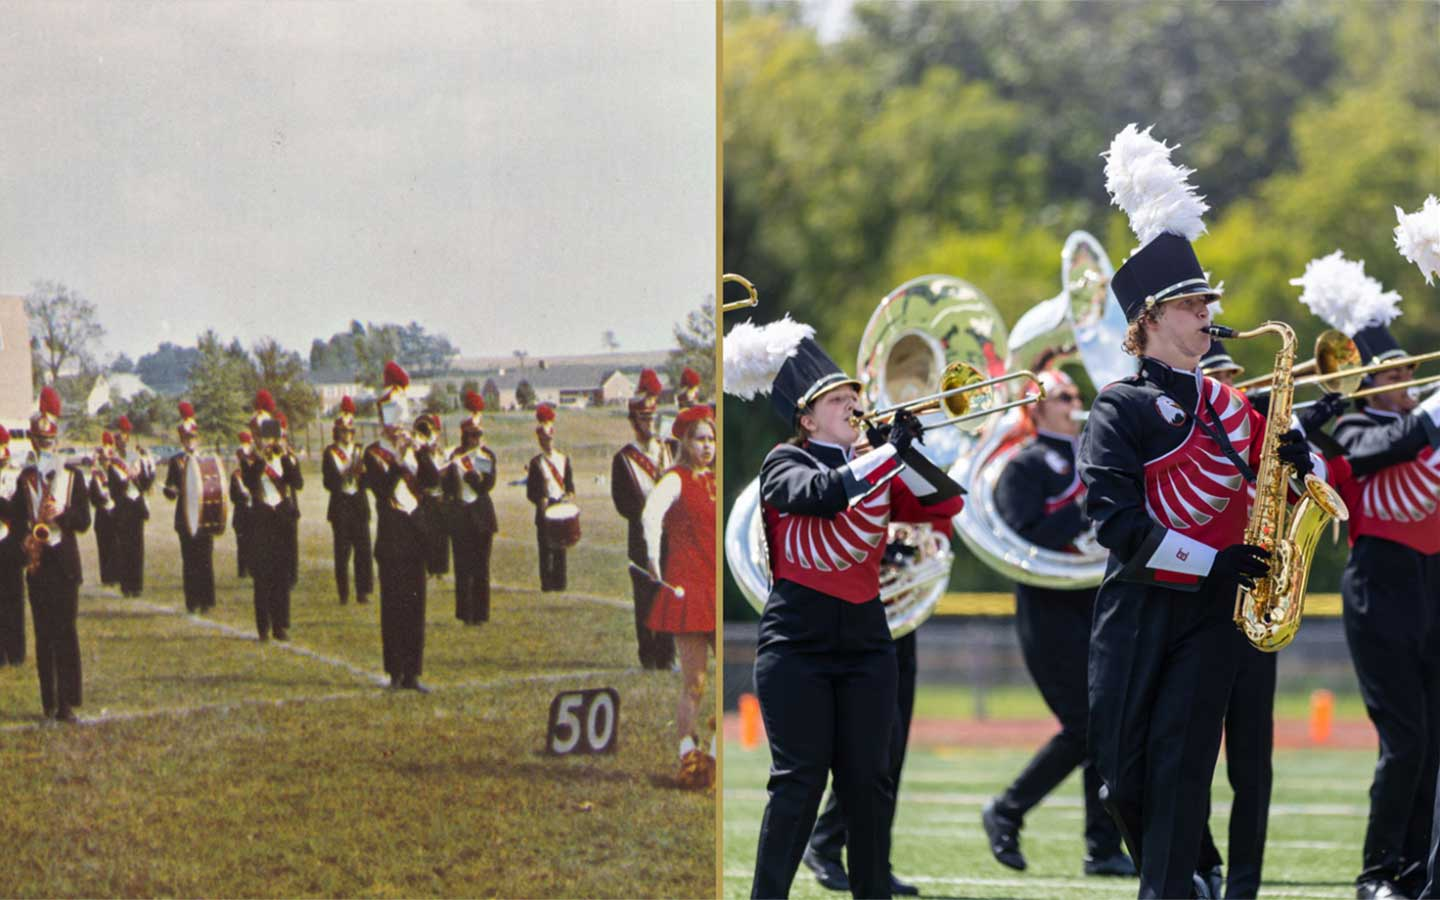 Two images appear side-by-side, on the left is an image from the 1950s BC band and on the right is the 2021 marching band.